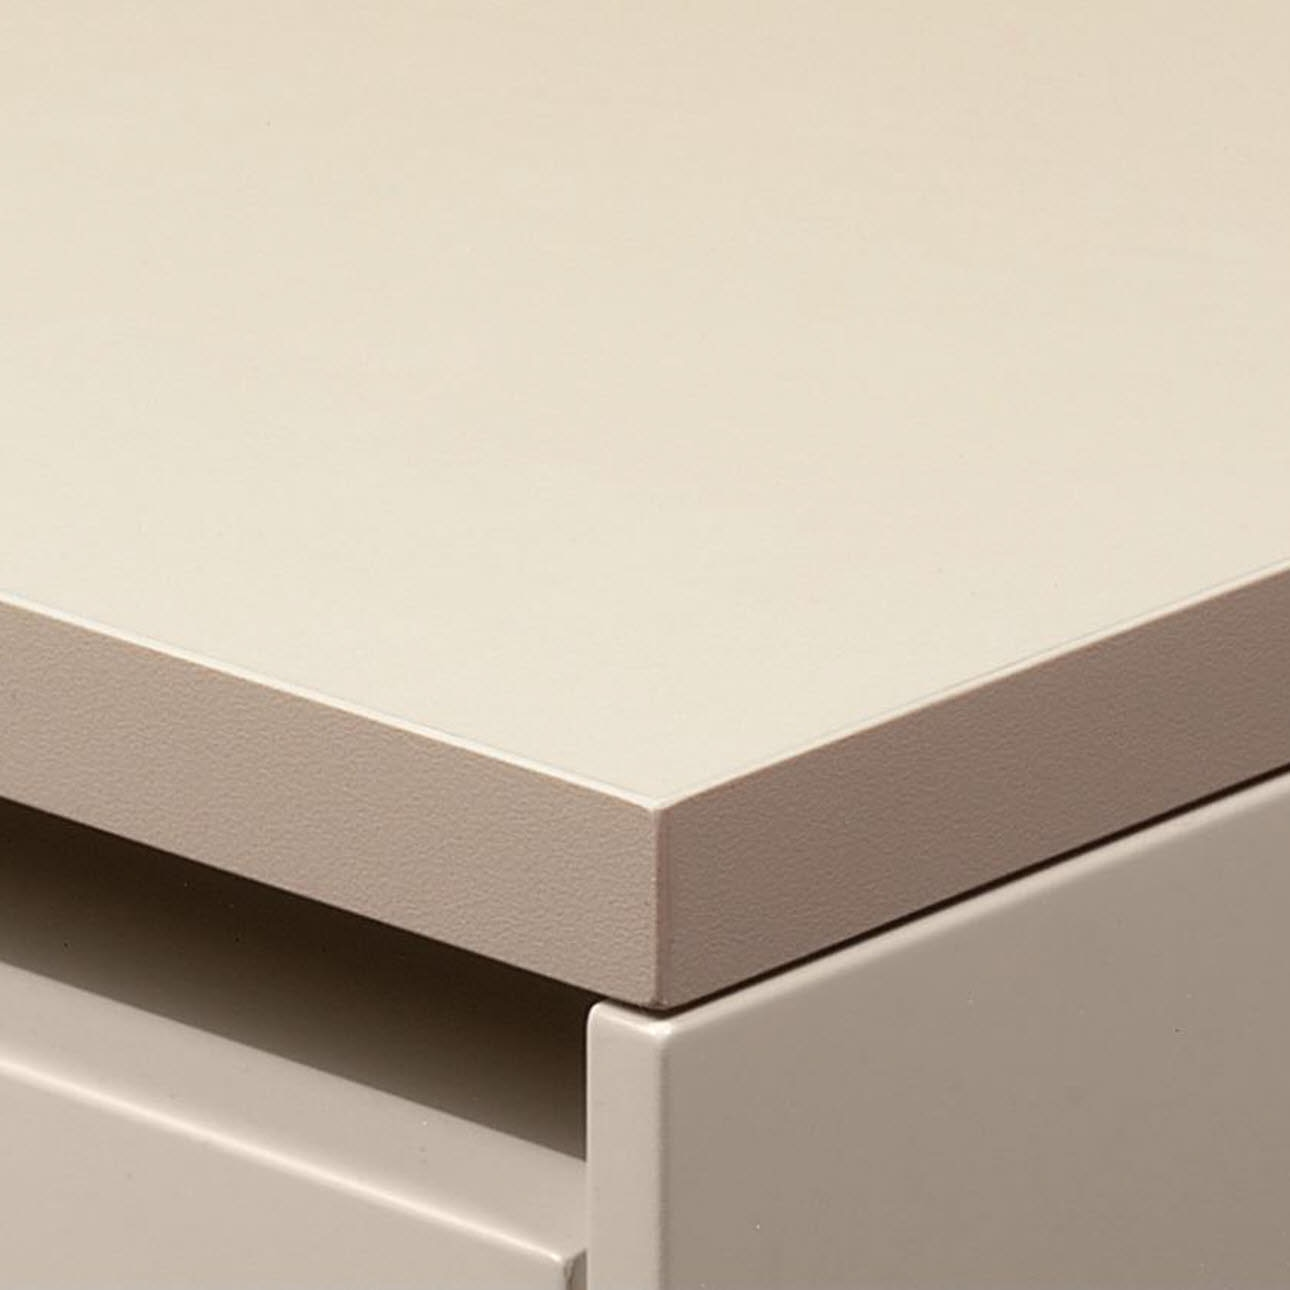 Thin worktop with plastic edge